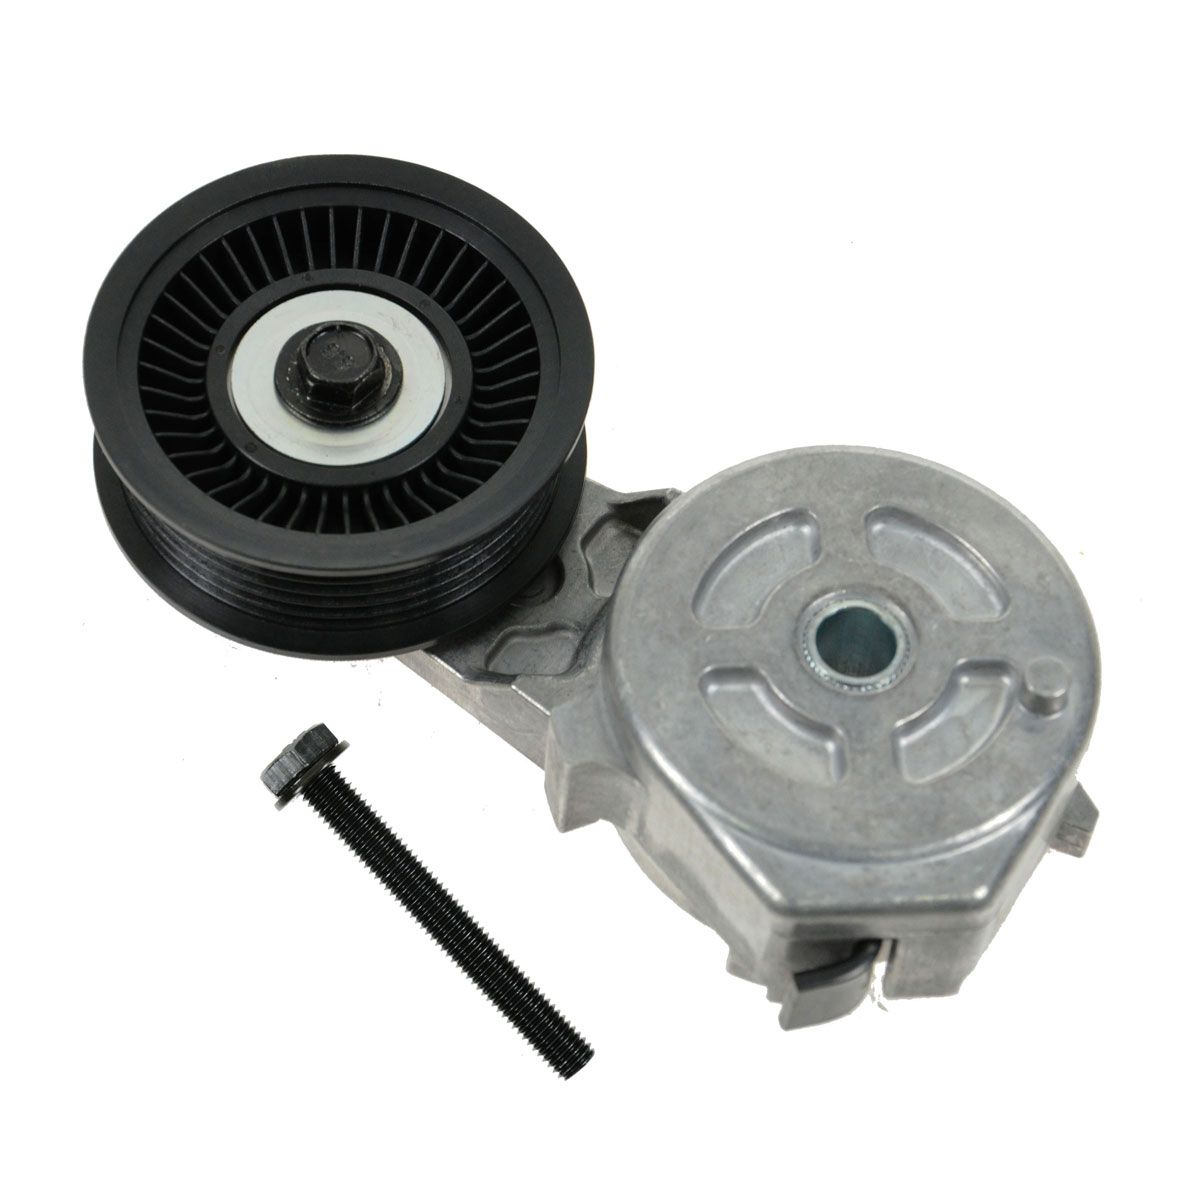 Fits Chevy Equinox 20052006 Factory Stereo to Aftermarket